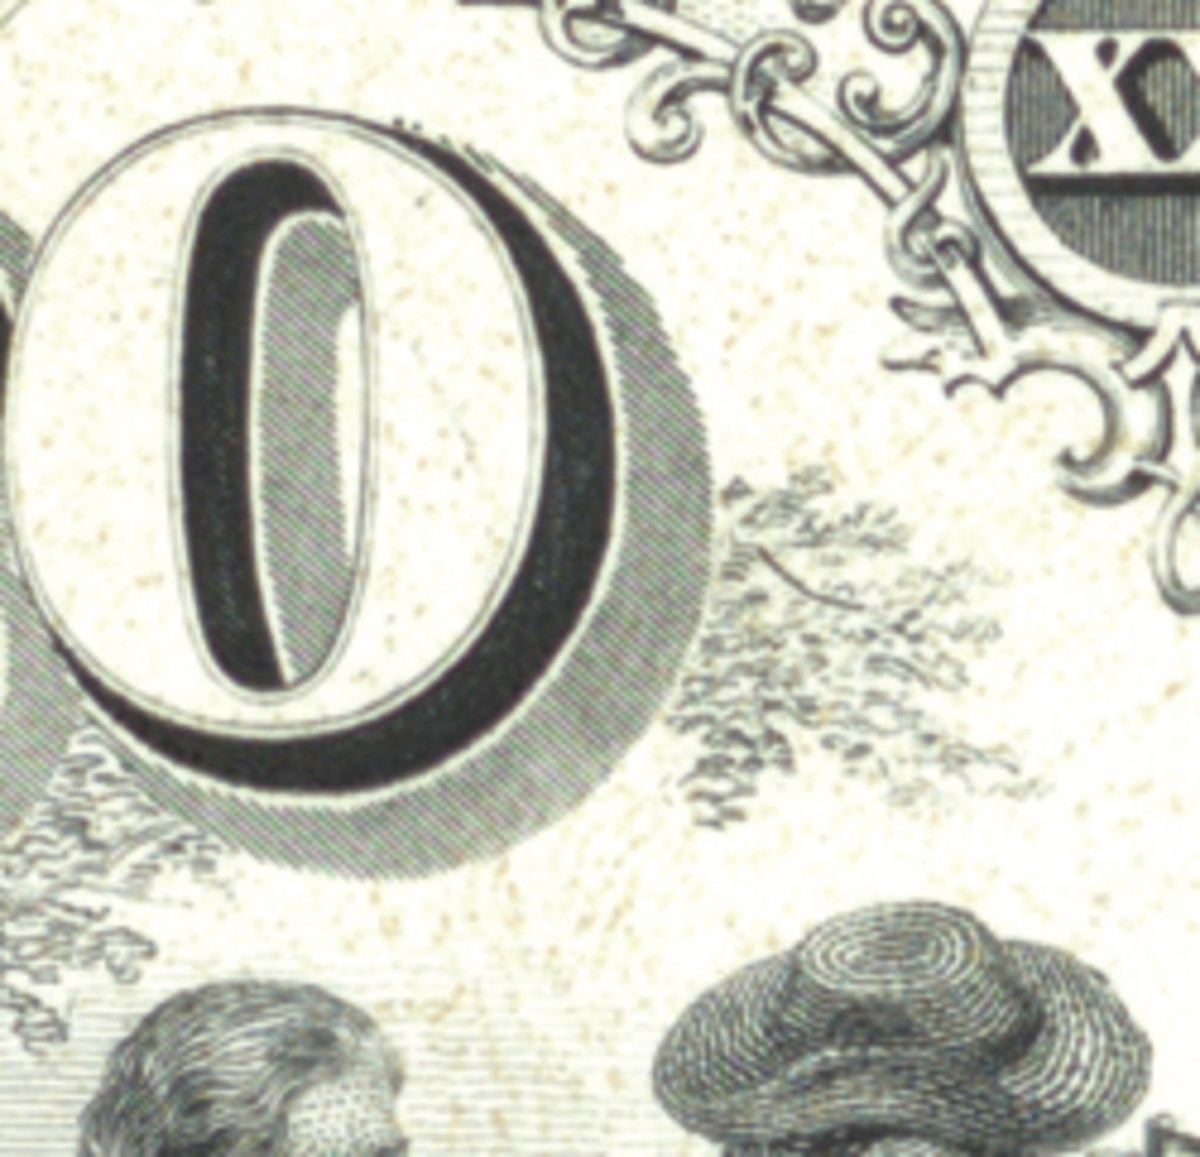 Detail of a proof from a well-formed transfer of the engraved image that you can use to compare with those above.